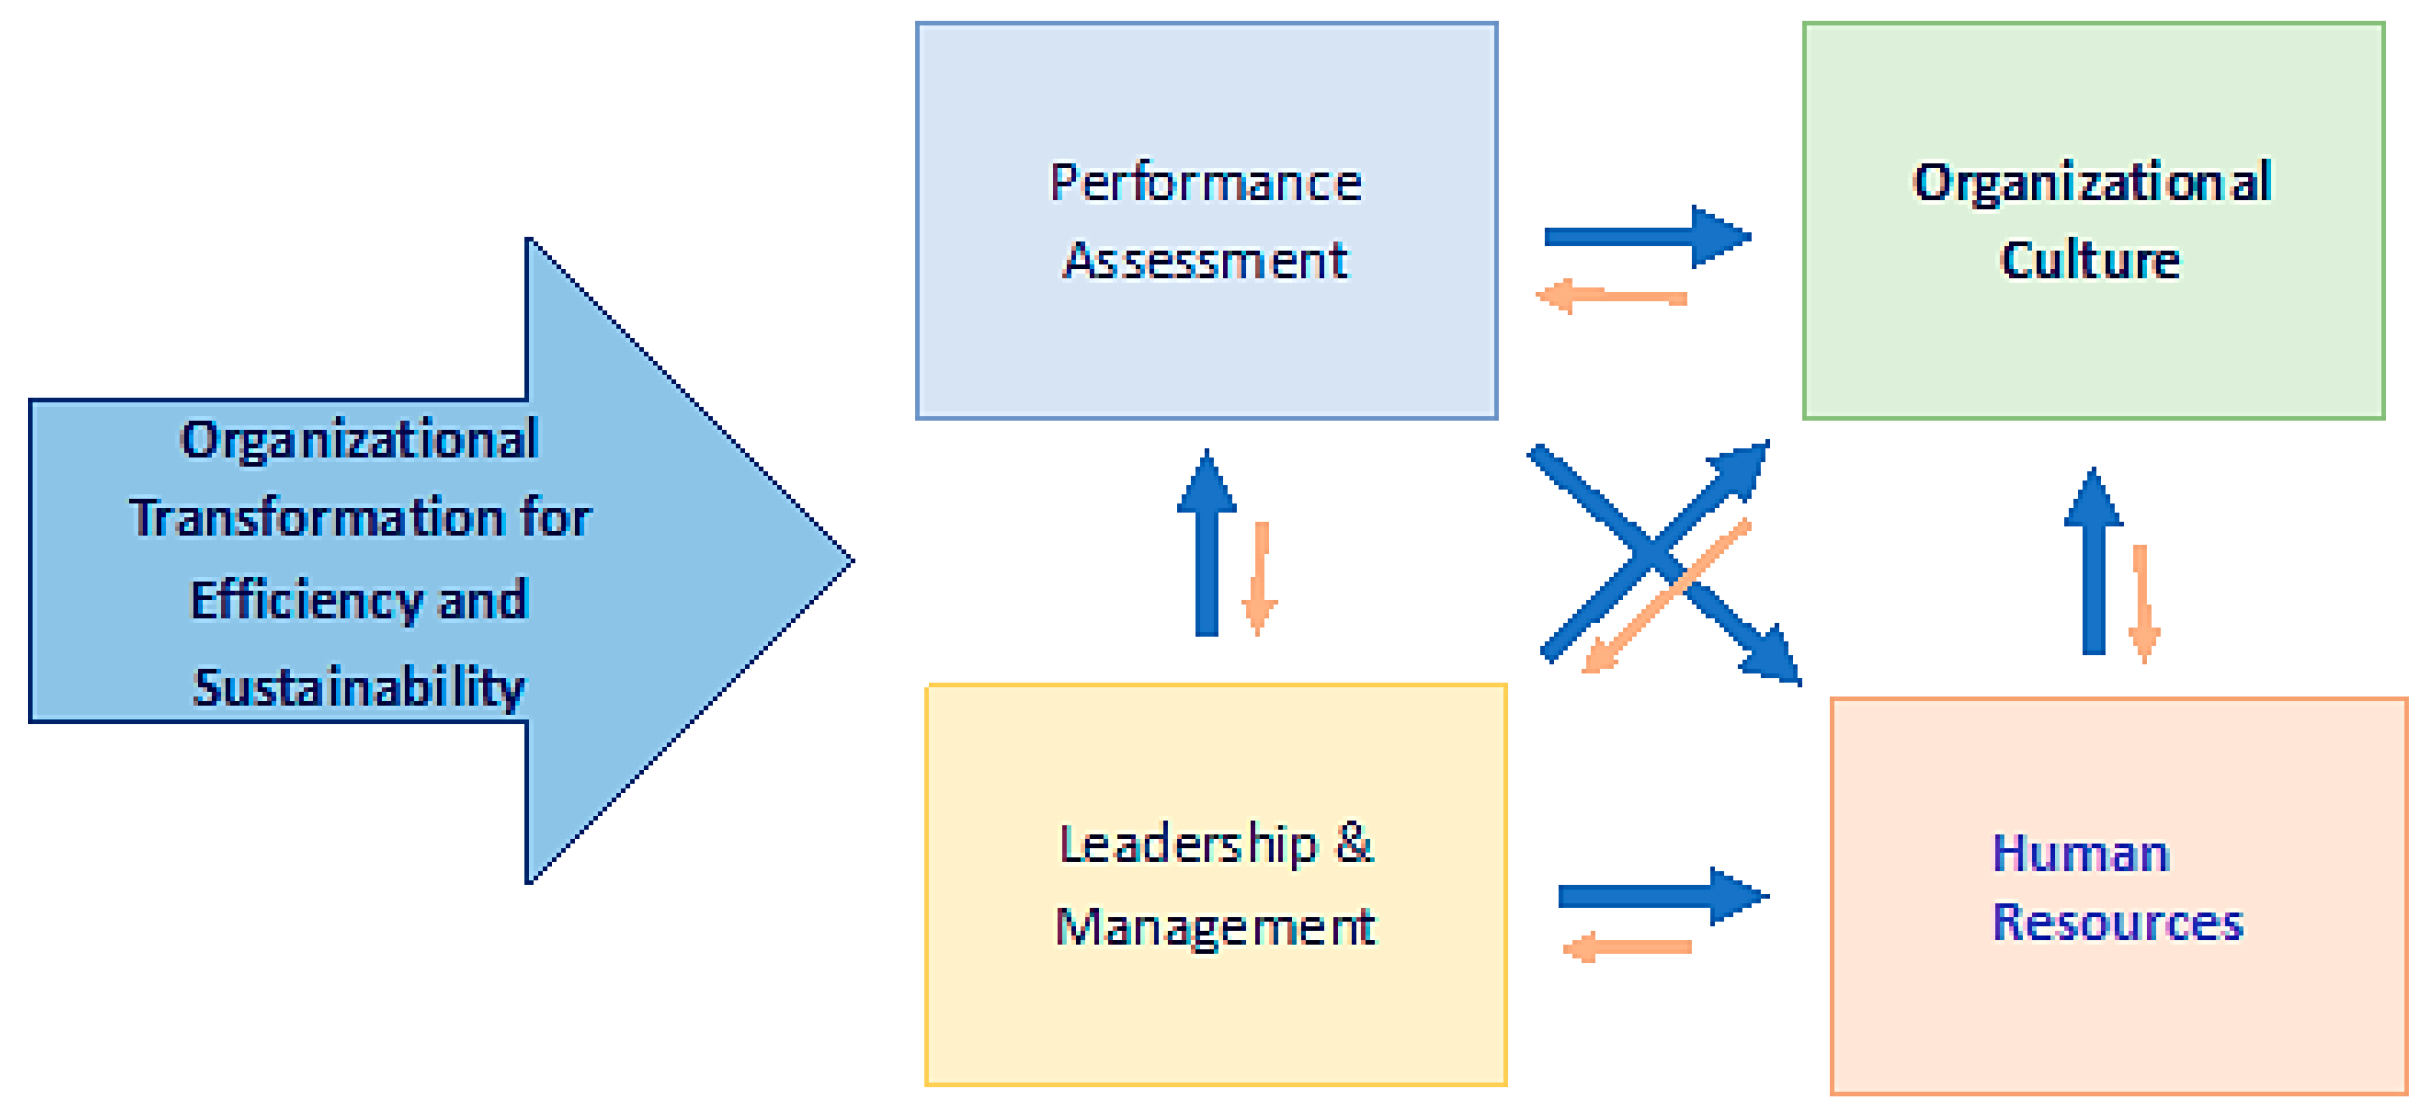 Cultural Health and Employee Well-Being as a Pathway to Sustainable Performance The Values-Driven Organization